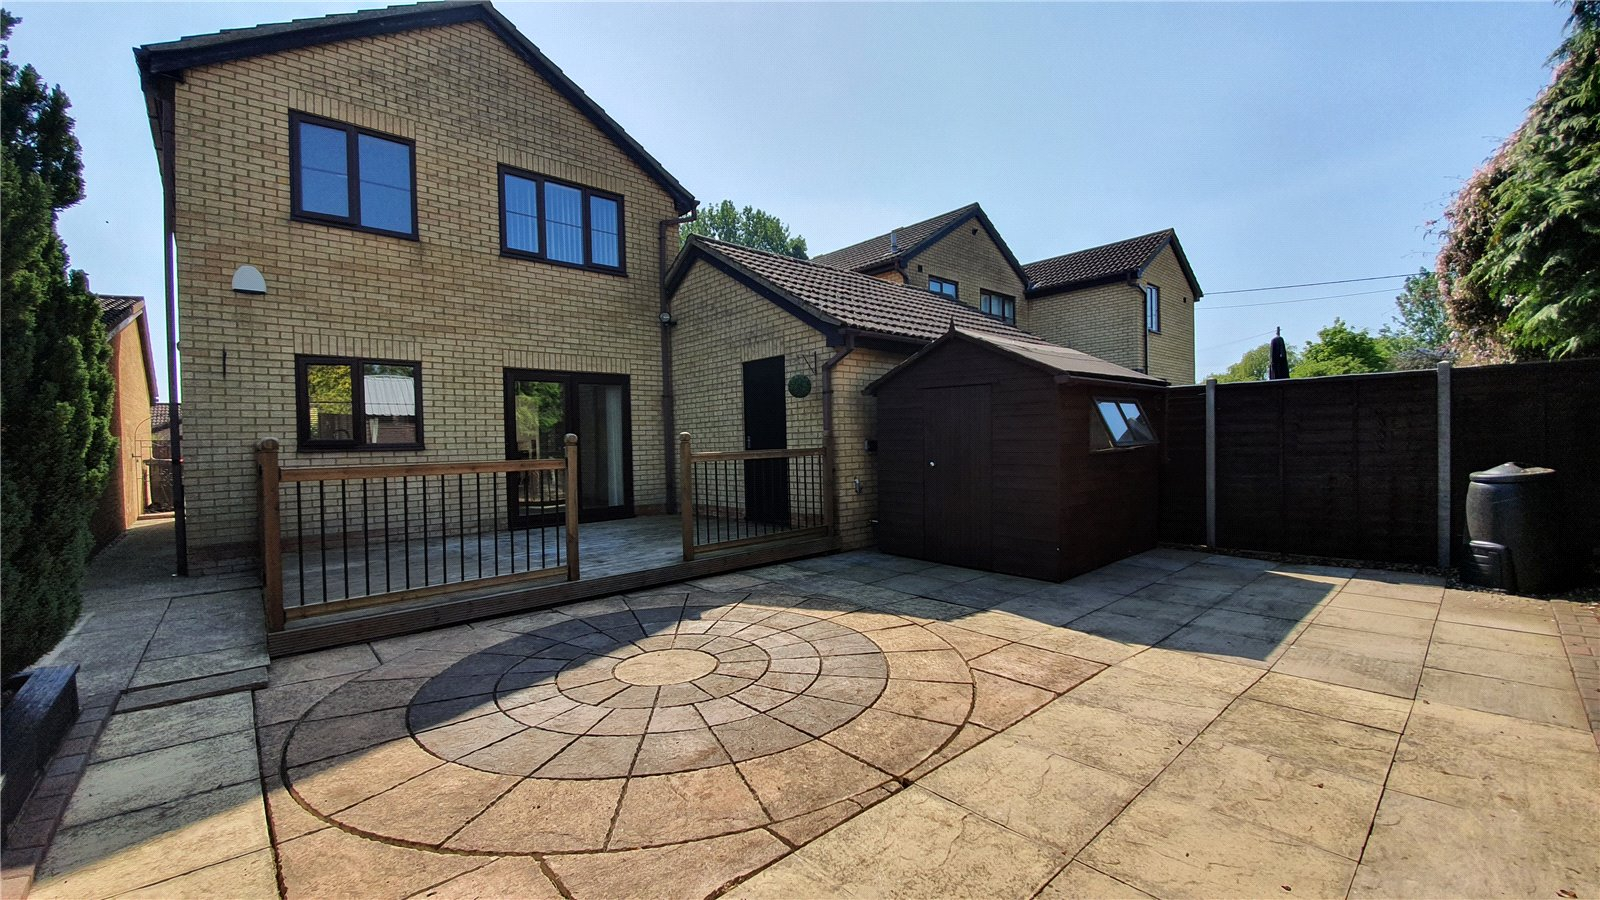 3 bed house for sale in Farm Close, Wyboston 1